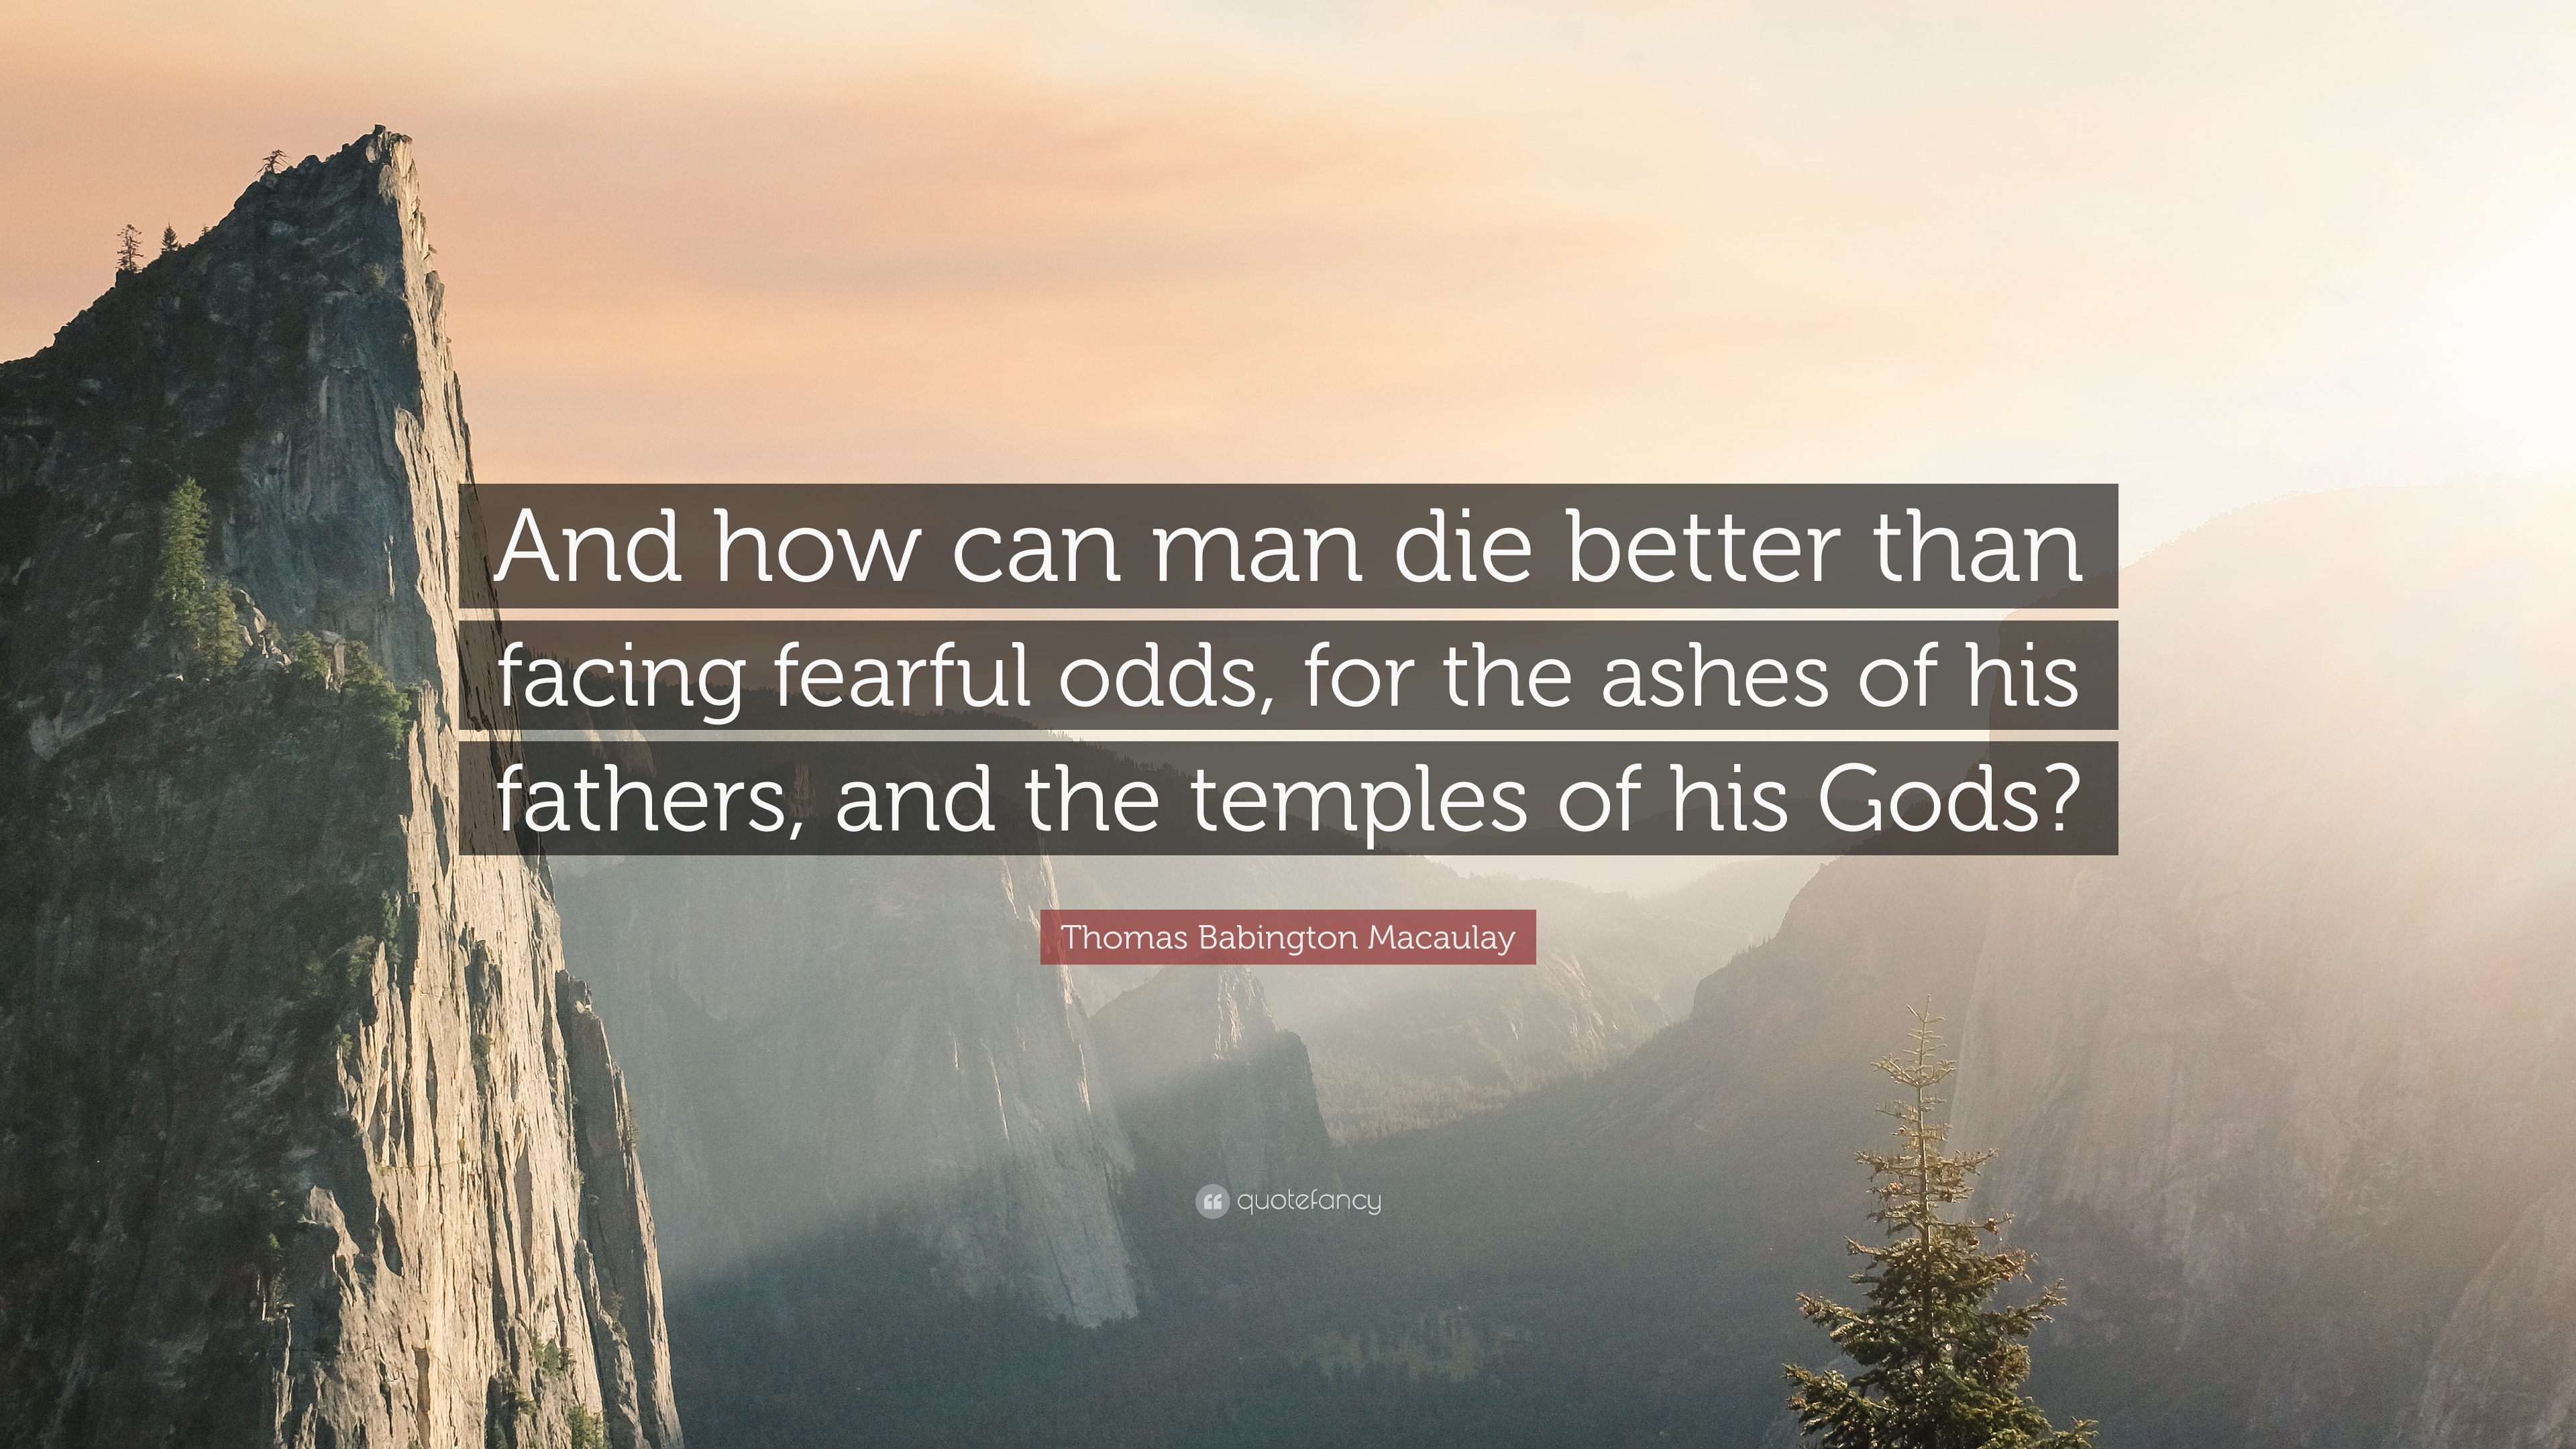 how could some gentleman pass away much better quote